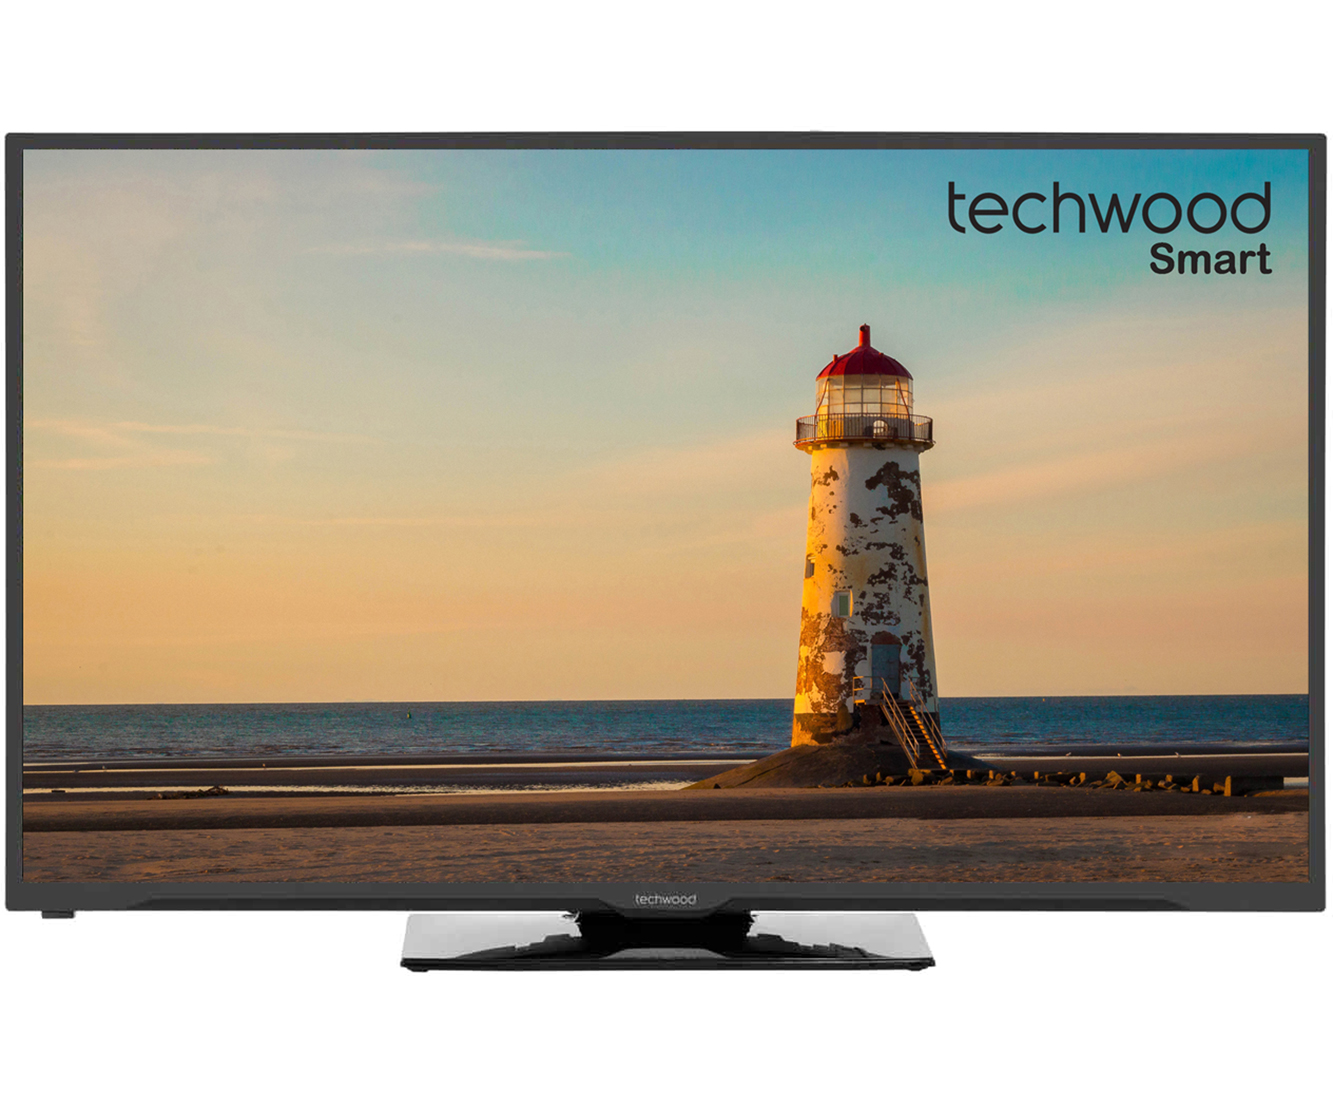 panasonic 50 inch tv manual